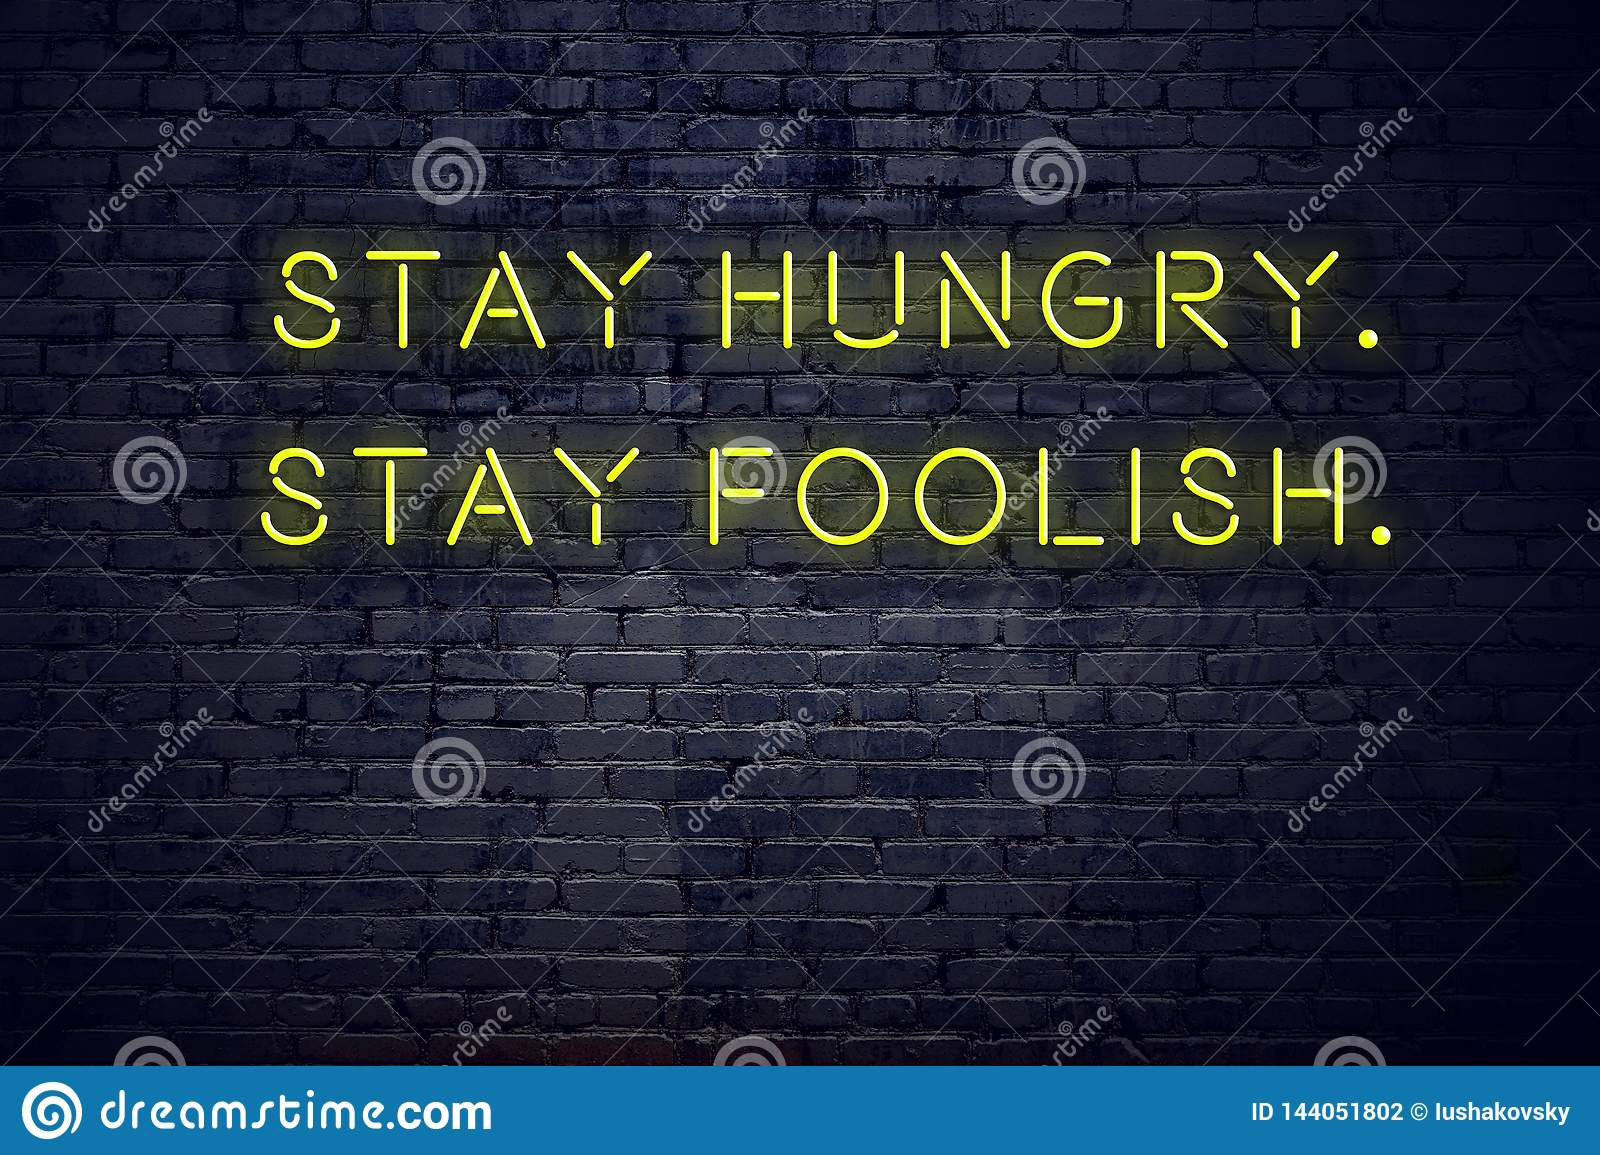 Positive inspiring quote on neon sign against brick wall stay hungry stay foolish